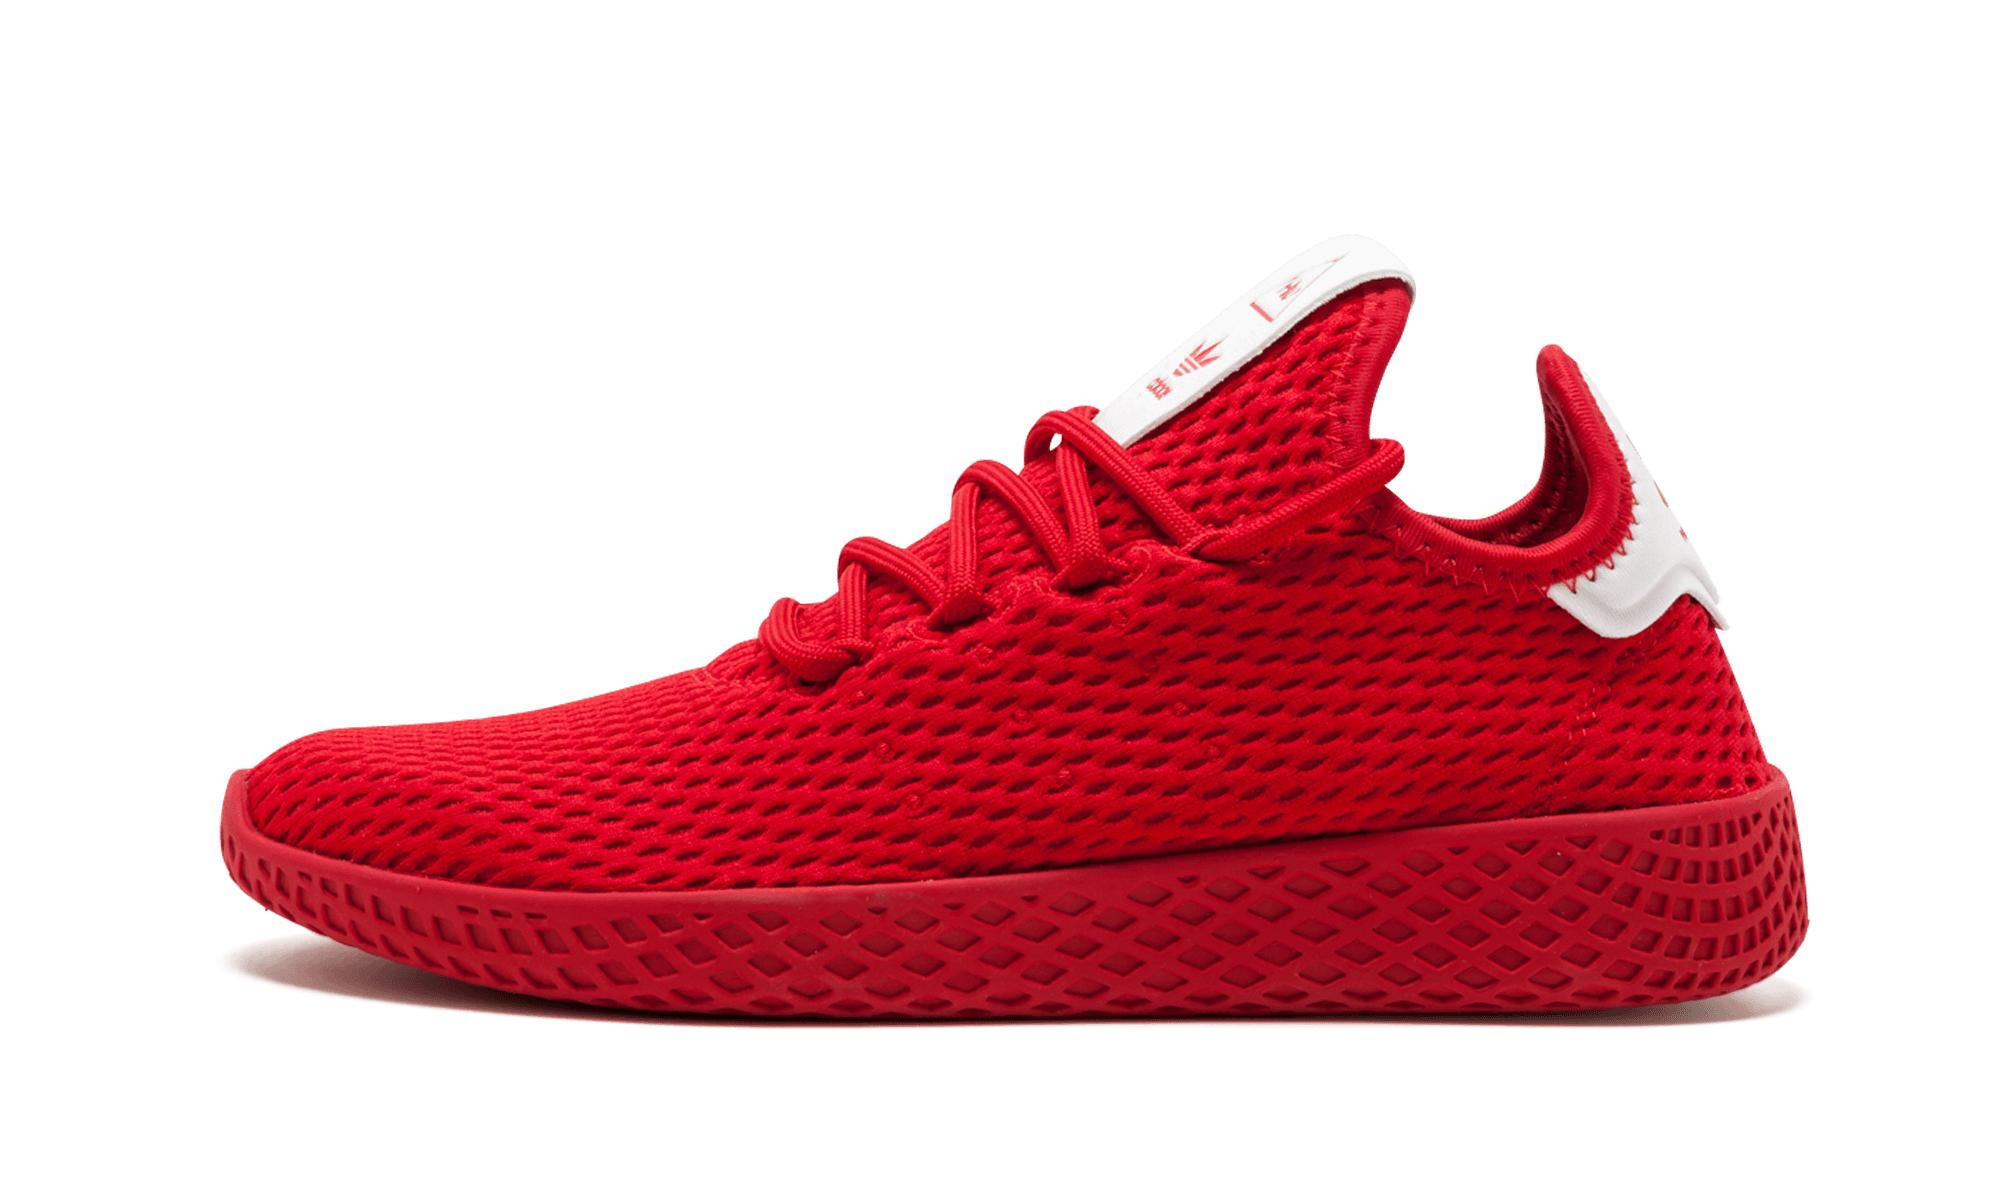 d98c9dd7ca9e7 adidas Pw Tennis Hu Core Red in Red for Men - Save 53% - Lyst